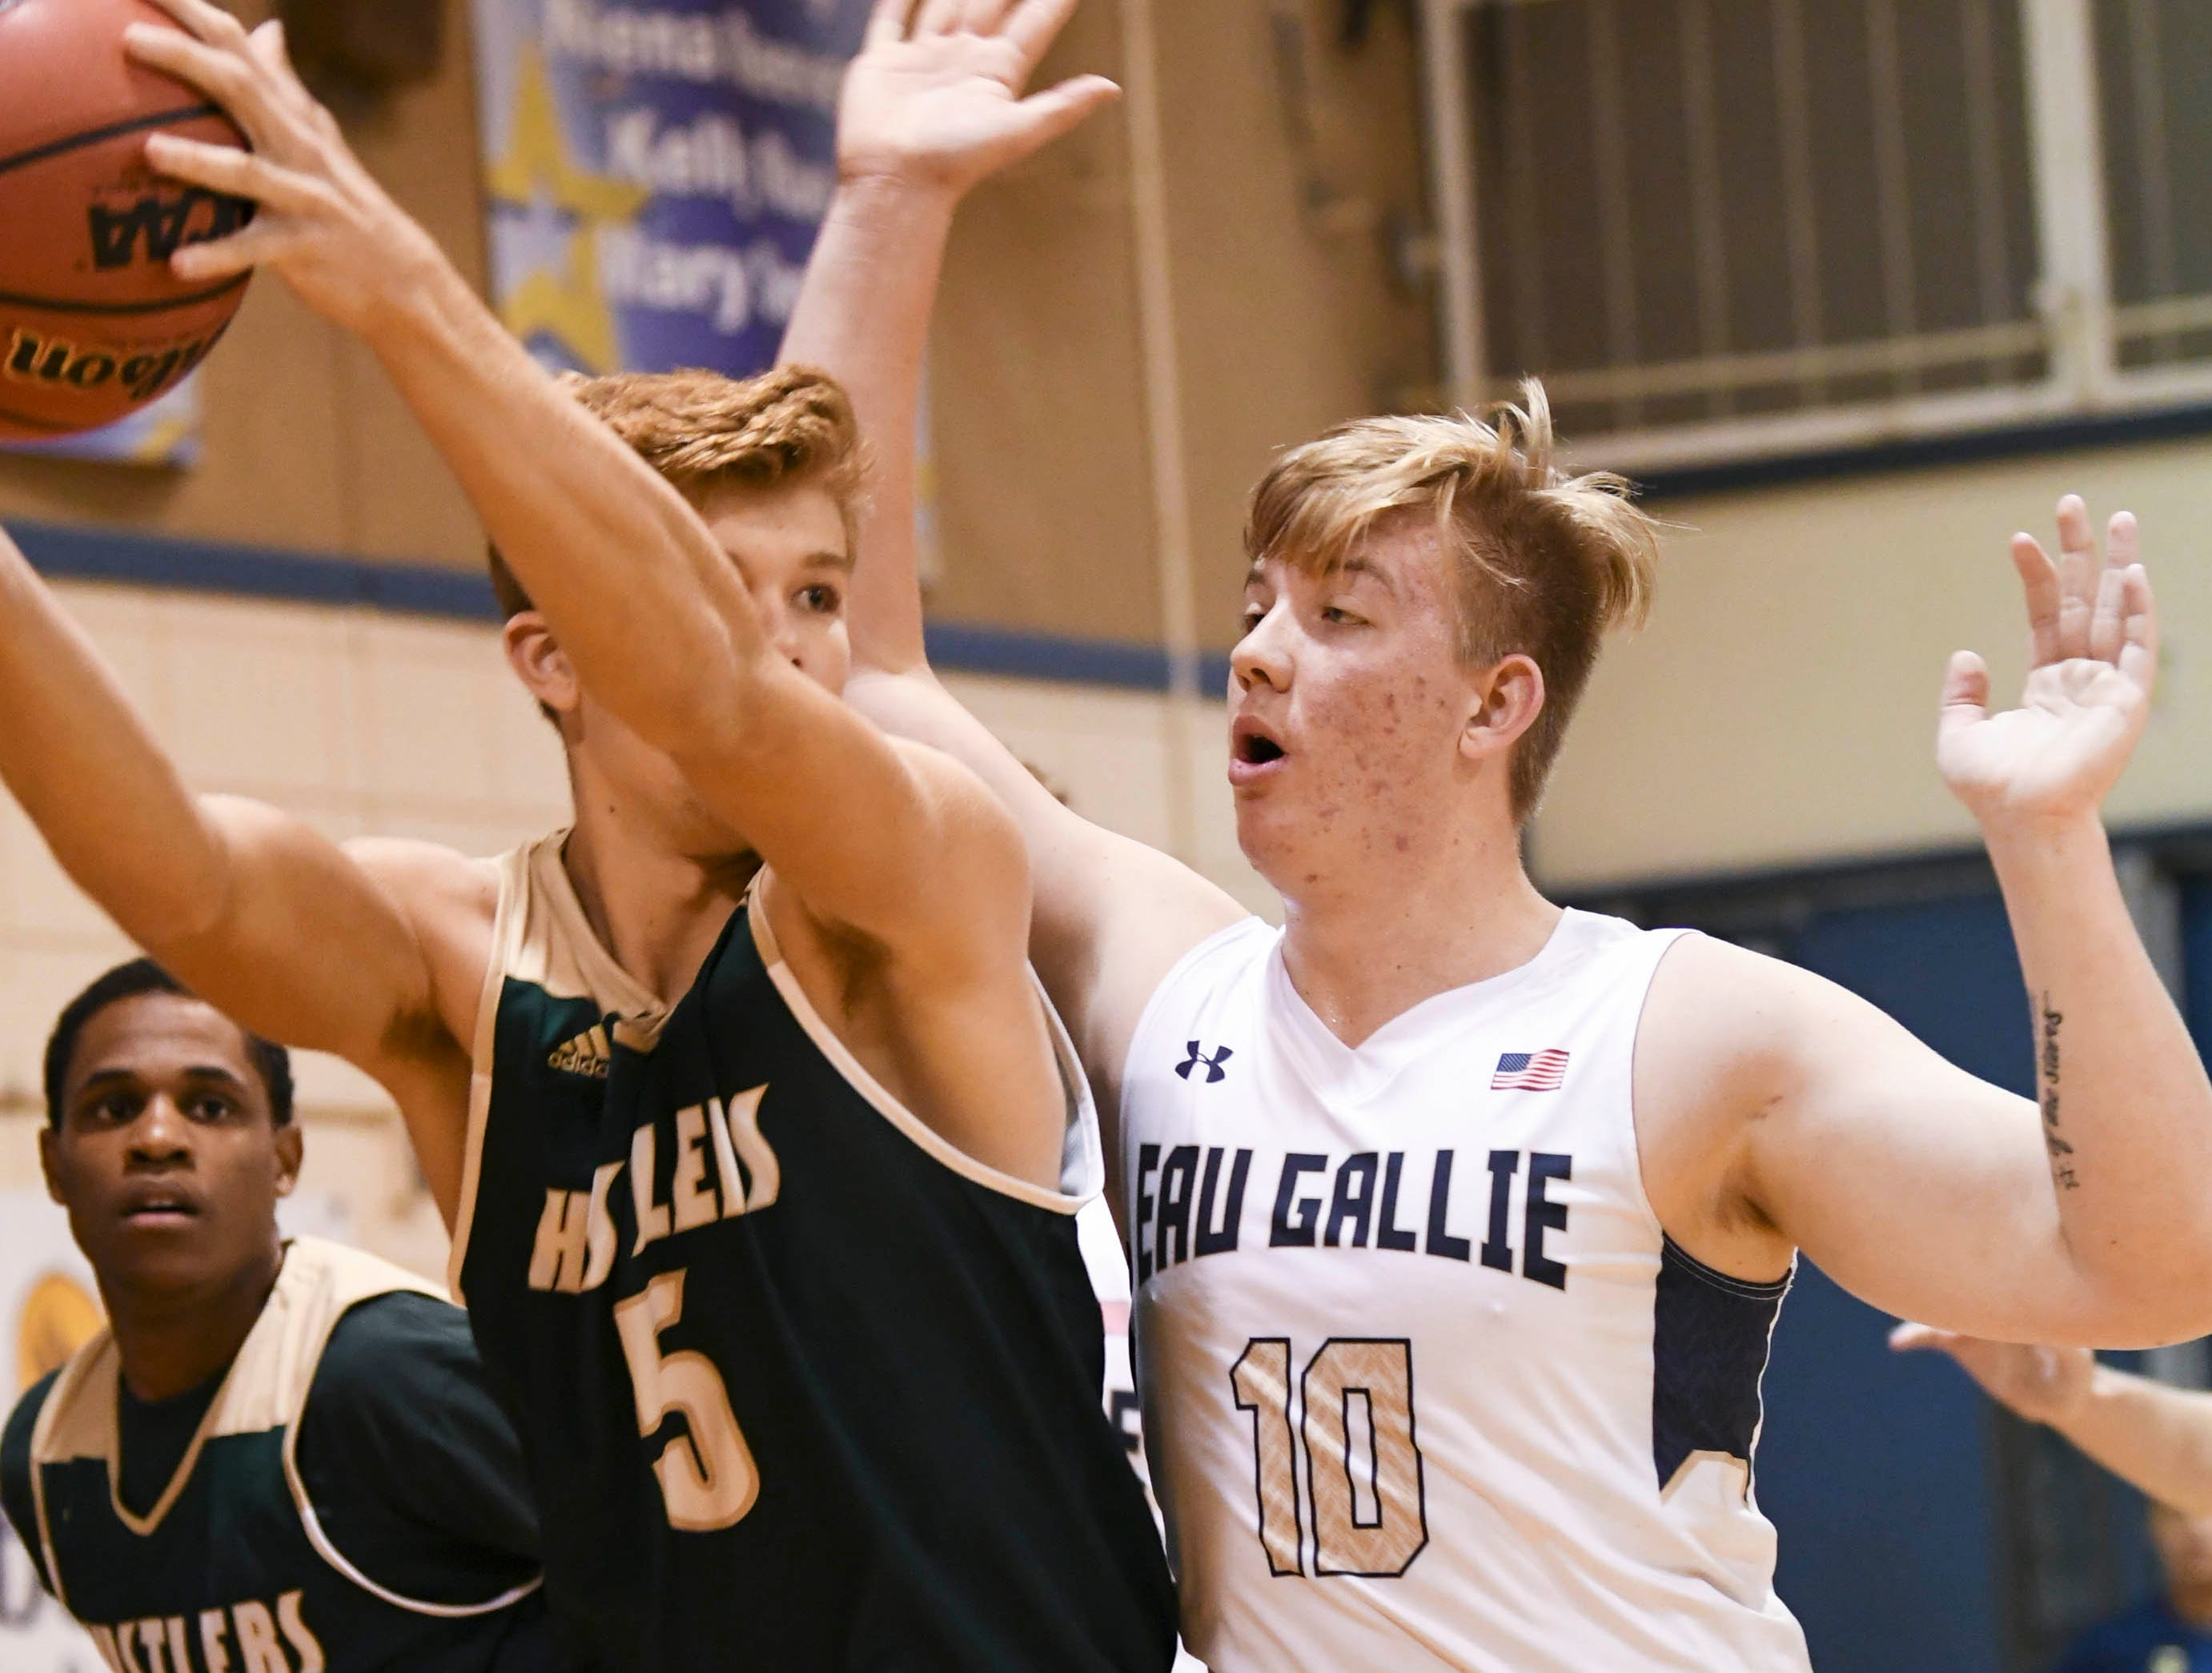 Eau Gallie's Sam Teter guards Mike Carley of MCC during Wednesday's game at Eau Gallie.